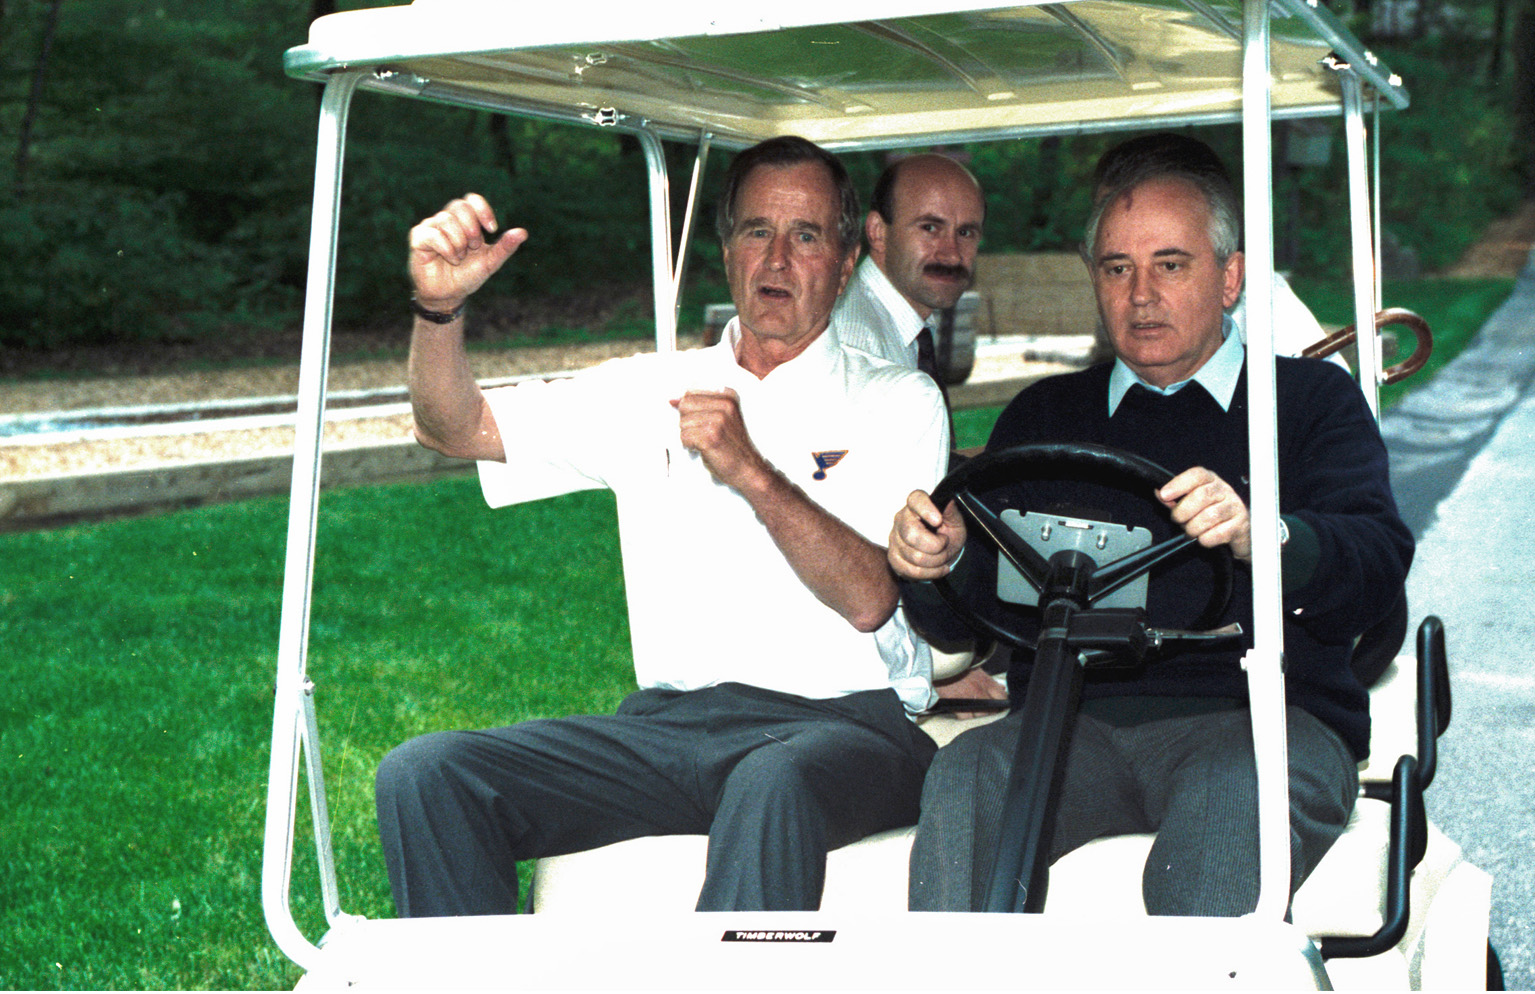 golf cart driving lessons to Gorbachev